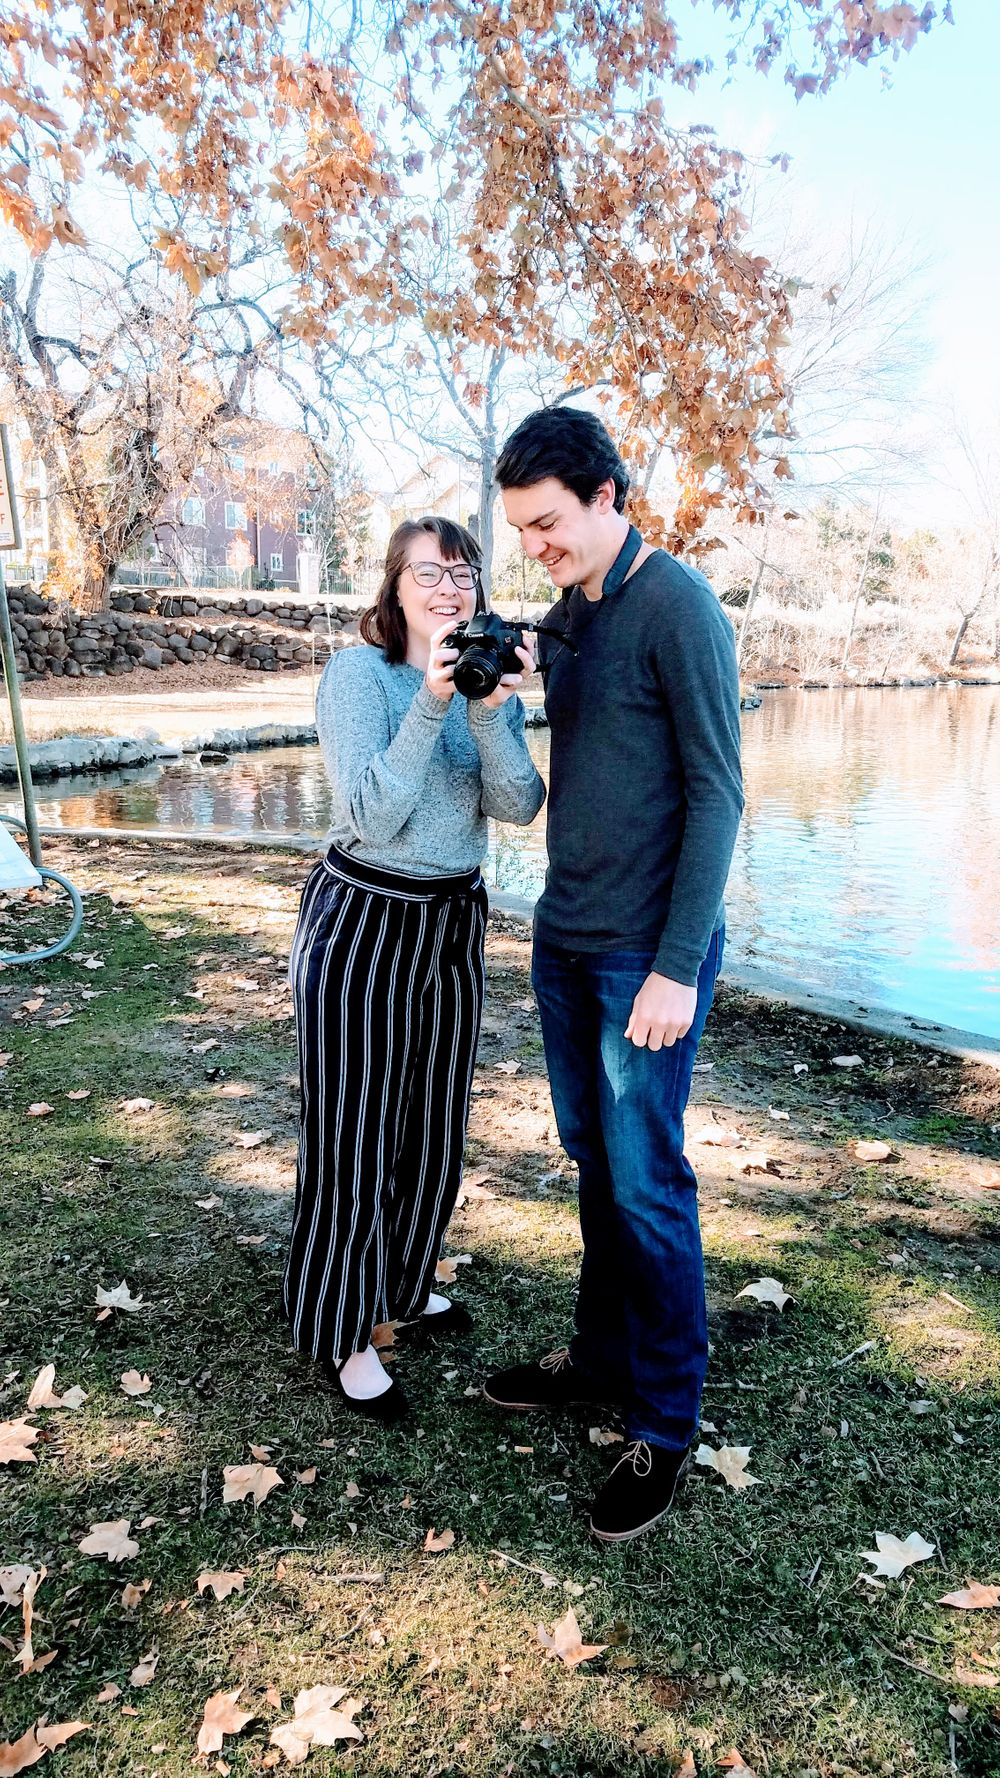 Brother and sister laughing at photos on a DSLR camera standing in Fall foliage